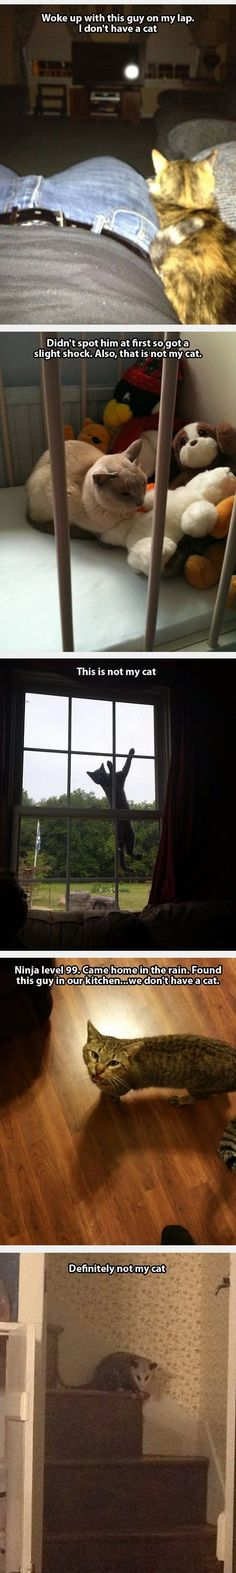 Funny pictures about When People Find Random Cats Inside Their Homes. Oh, and cool pics about When People Find Random Cats Inside Their Homes. Also, When People Find Random Cats Inside Their Homes photos. Cute Funny Animals, Funny Animal Pictures, Funny Cute, Cute Cats, Hilarious, Funny Pics, Funny Stuff, Cocker Spaniel, Crazy Cat Lady